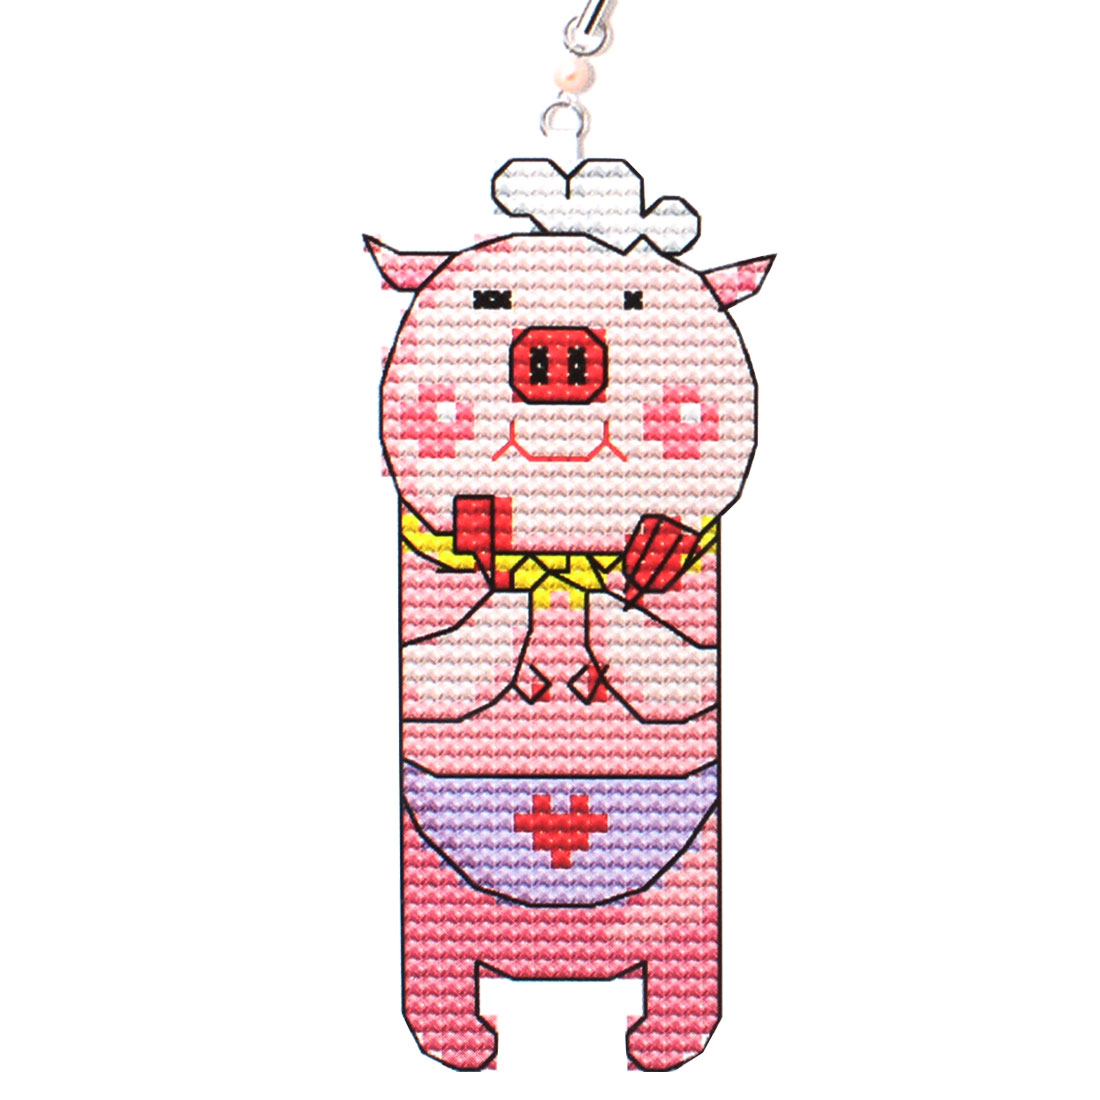 Woman Pink Yellow Pig Printed Handbag Pendant Cross Stitch Counted Kit